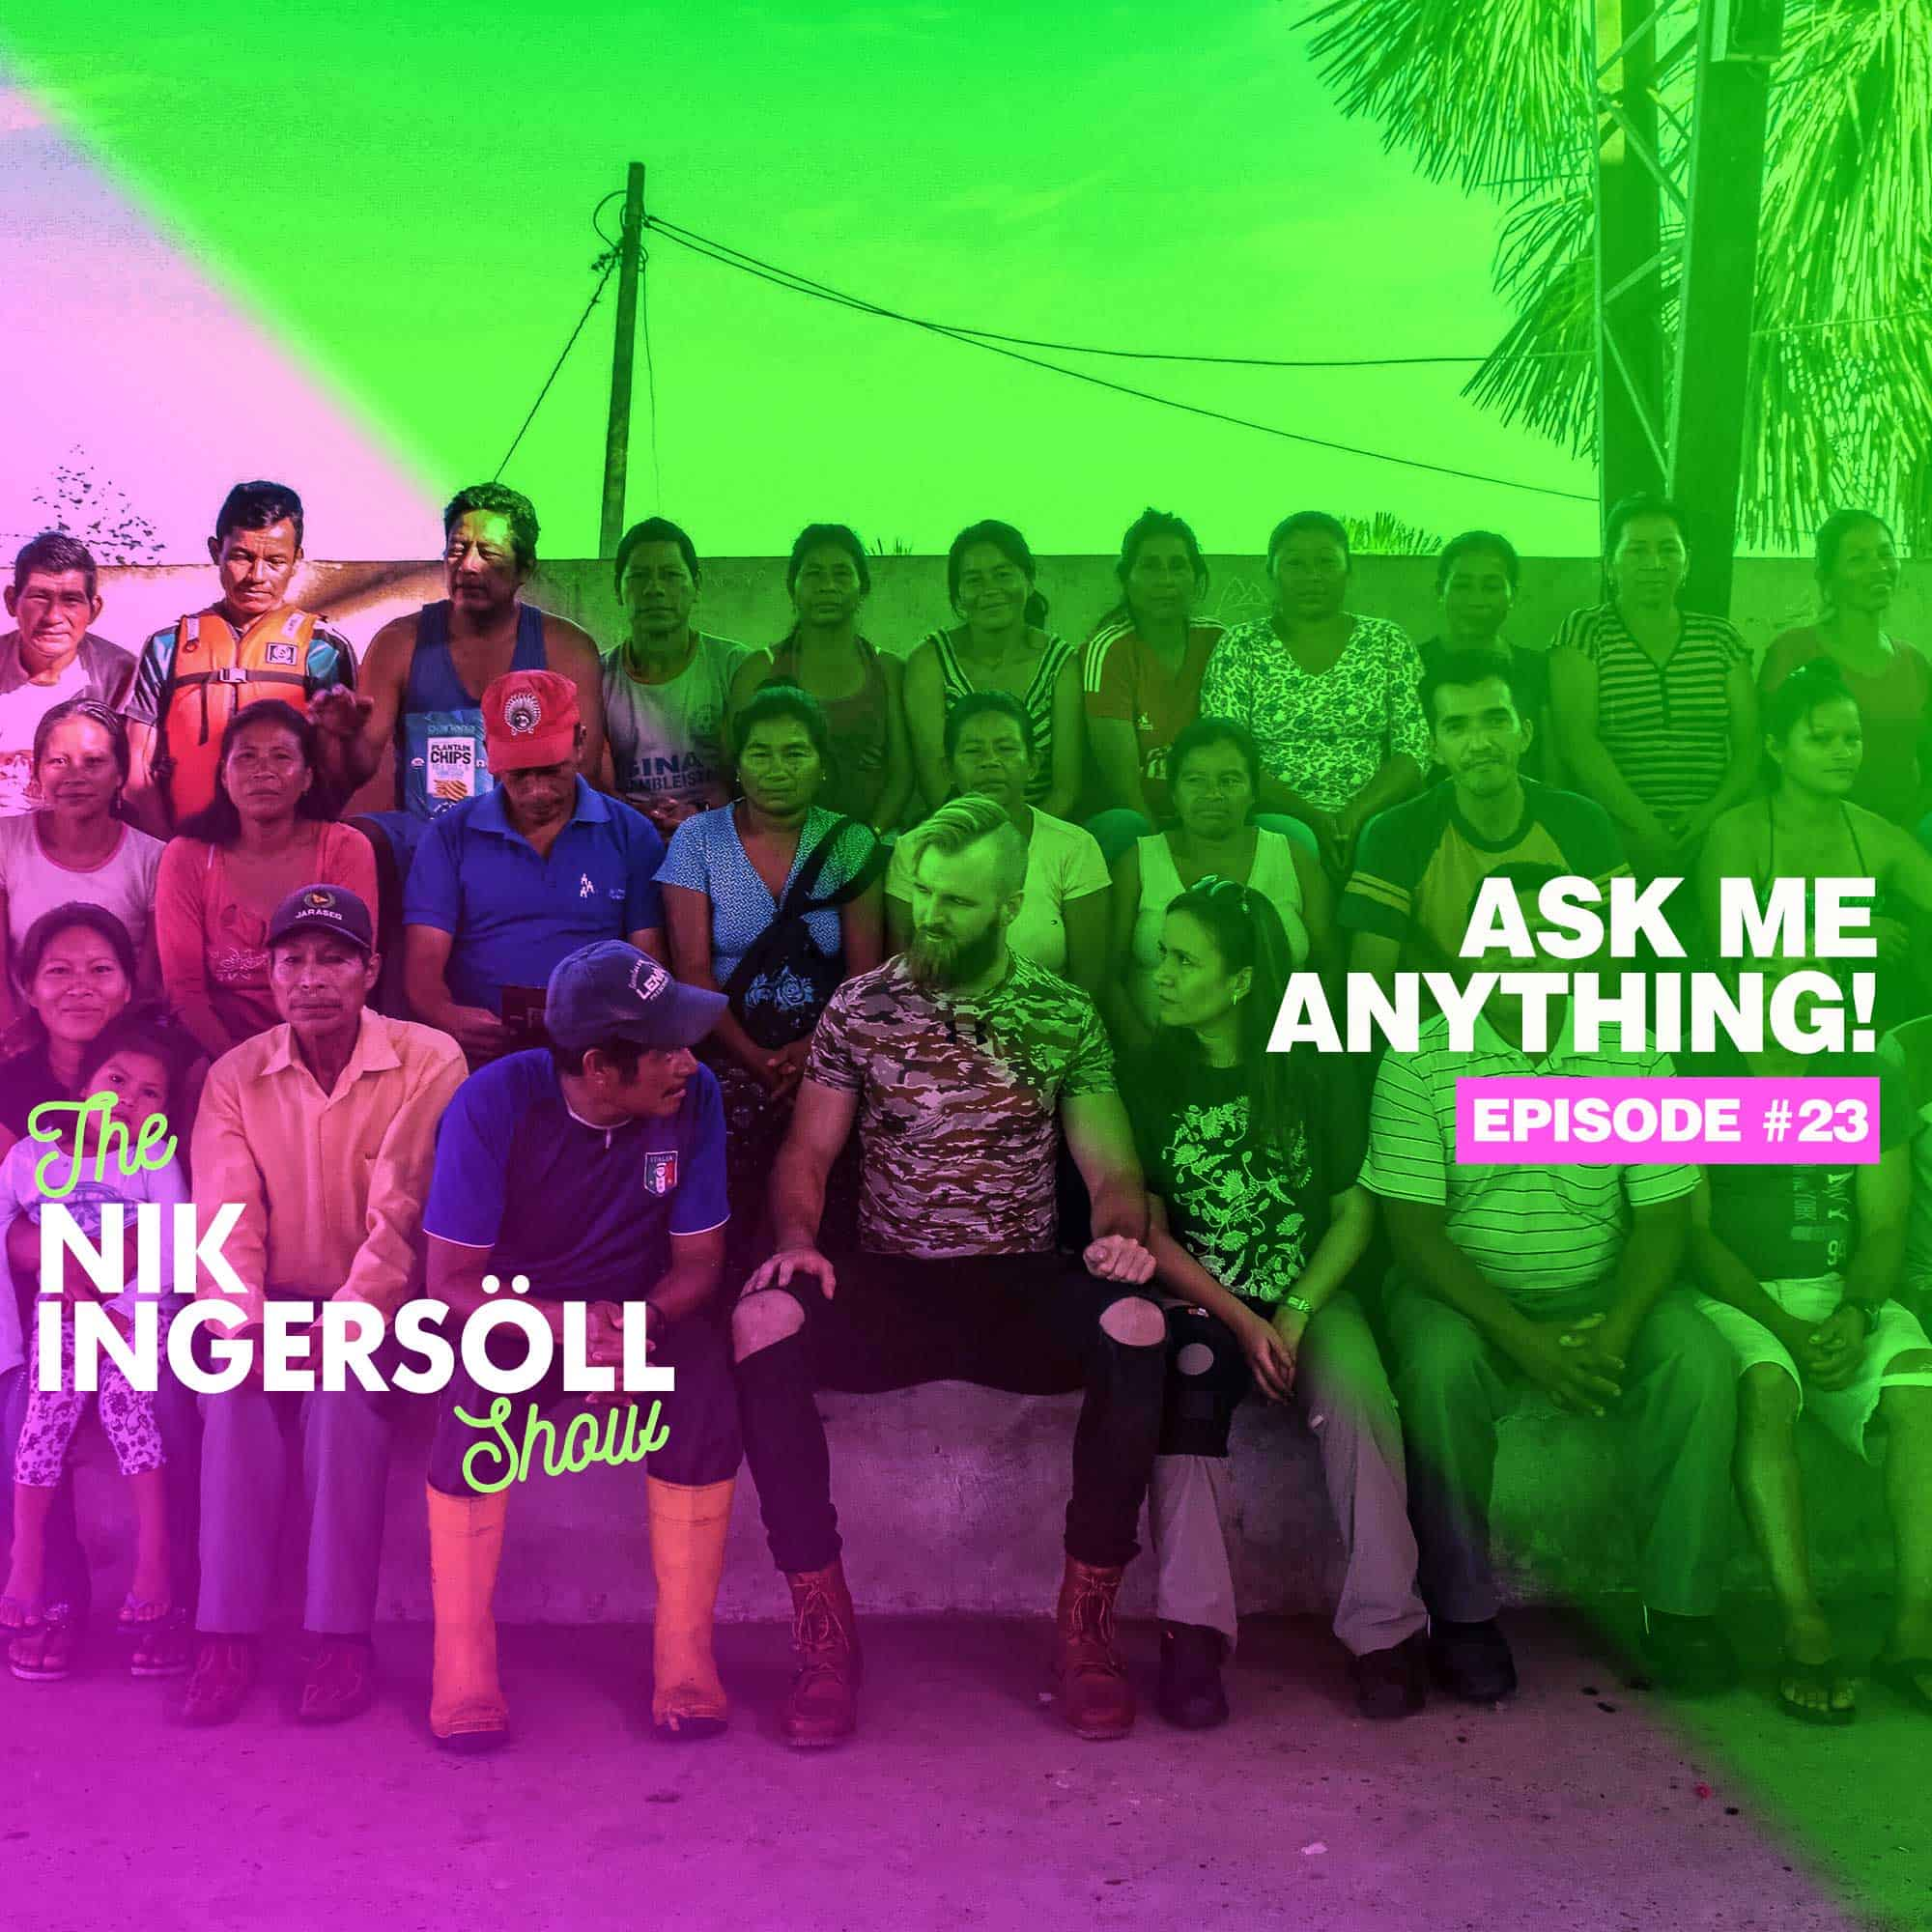 #23: Ask Me Anything! – Part 6 – (Podcast) The Nik Ingersoll Show